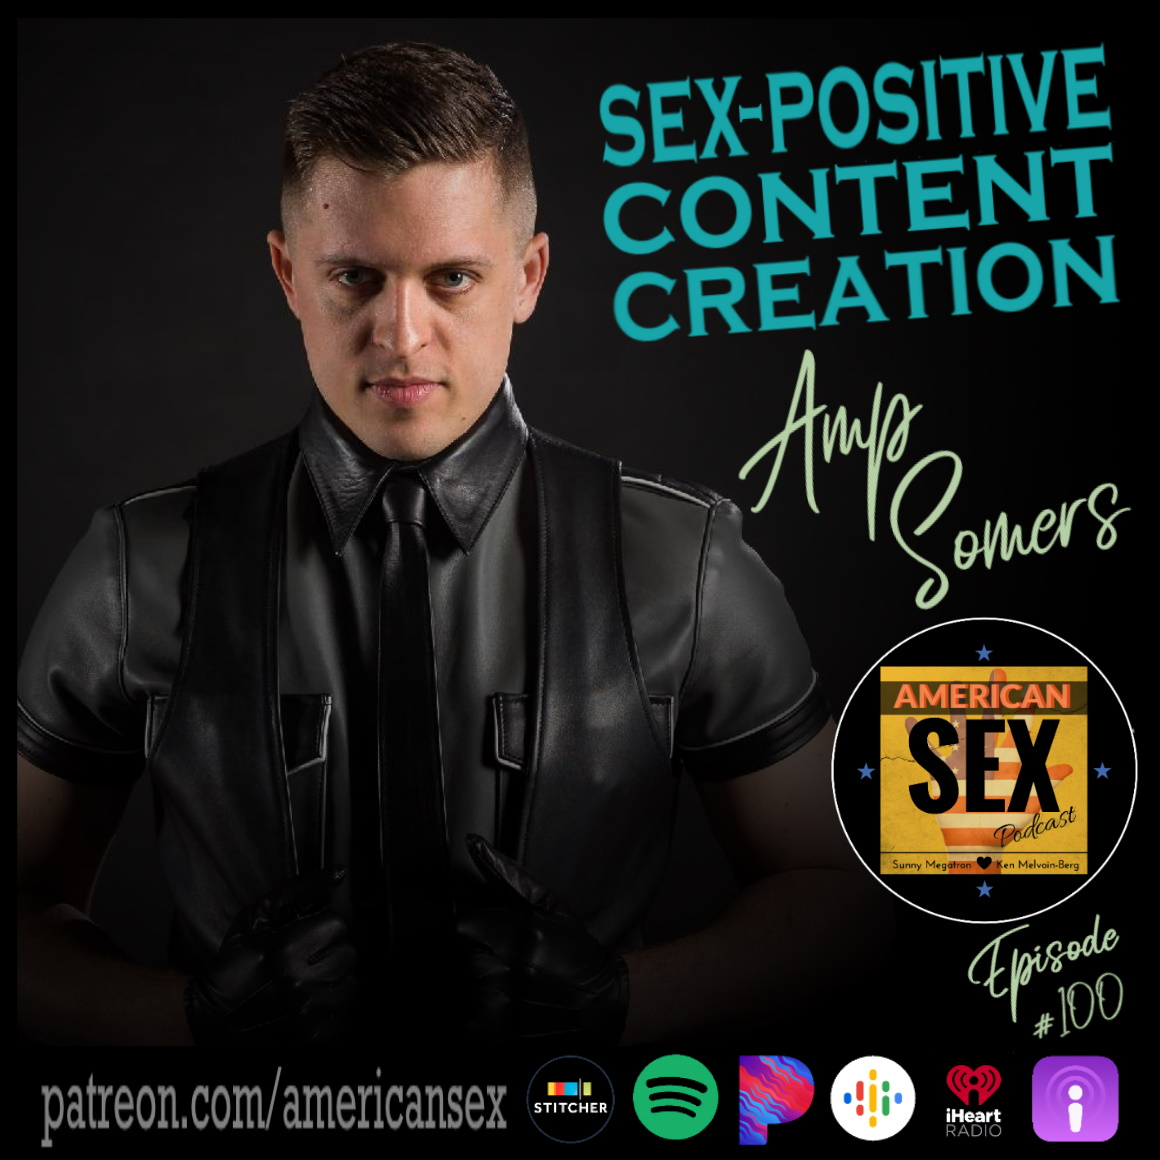 Amp Somers Sex Postive Content Creator